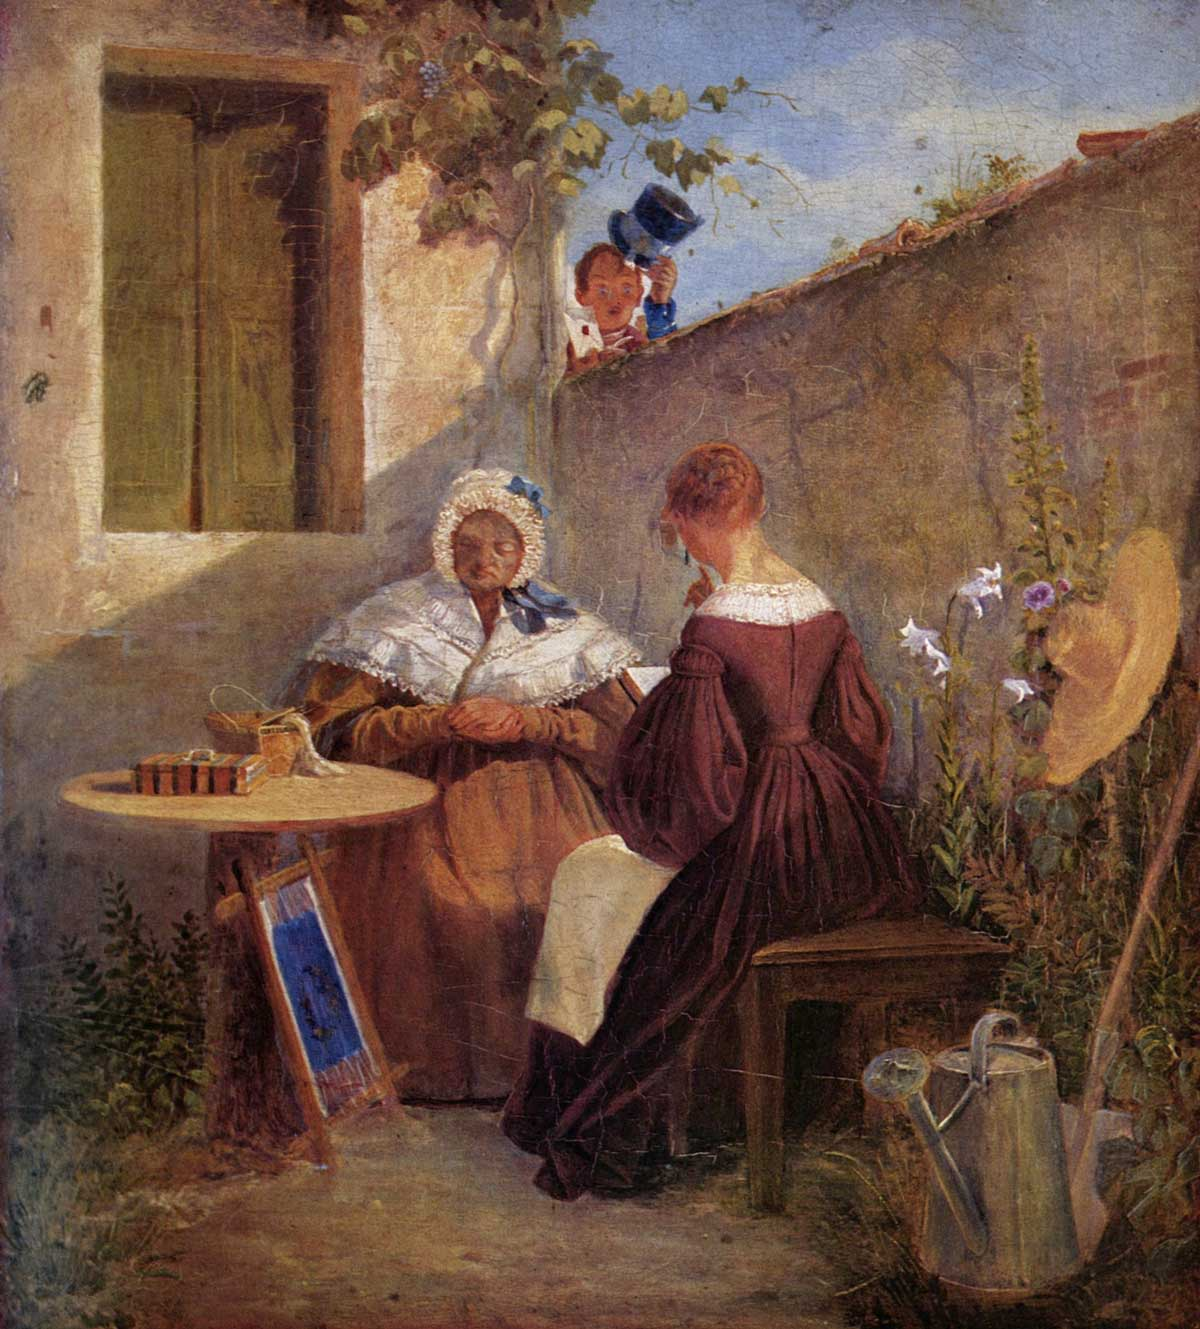 Stolen painting by Carl Spitzweg: The love letter (1846)